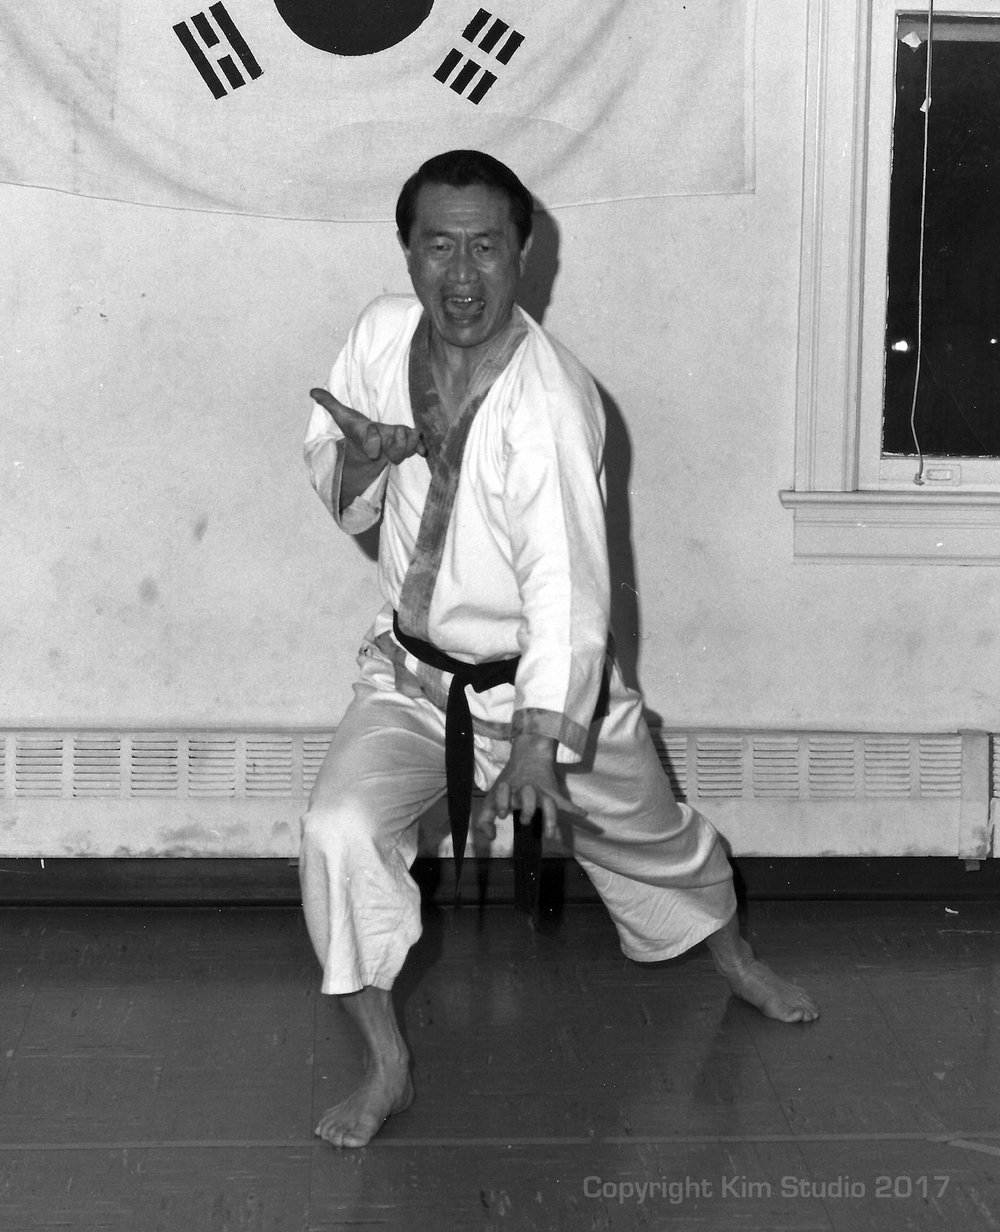 Grandmaster Kim Ki Whang (or Mr. Kim as he was often called by his students) demonstrating the form Shipsu at the first Kim Studio dojo opened in Silver Spring, MD in 1964.